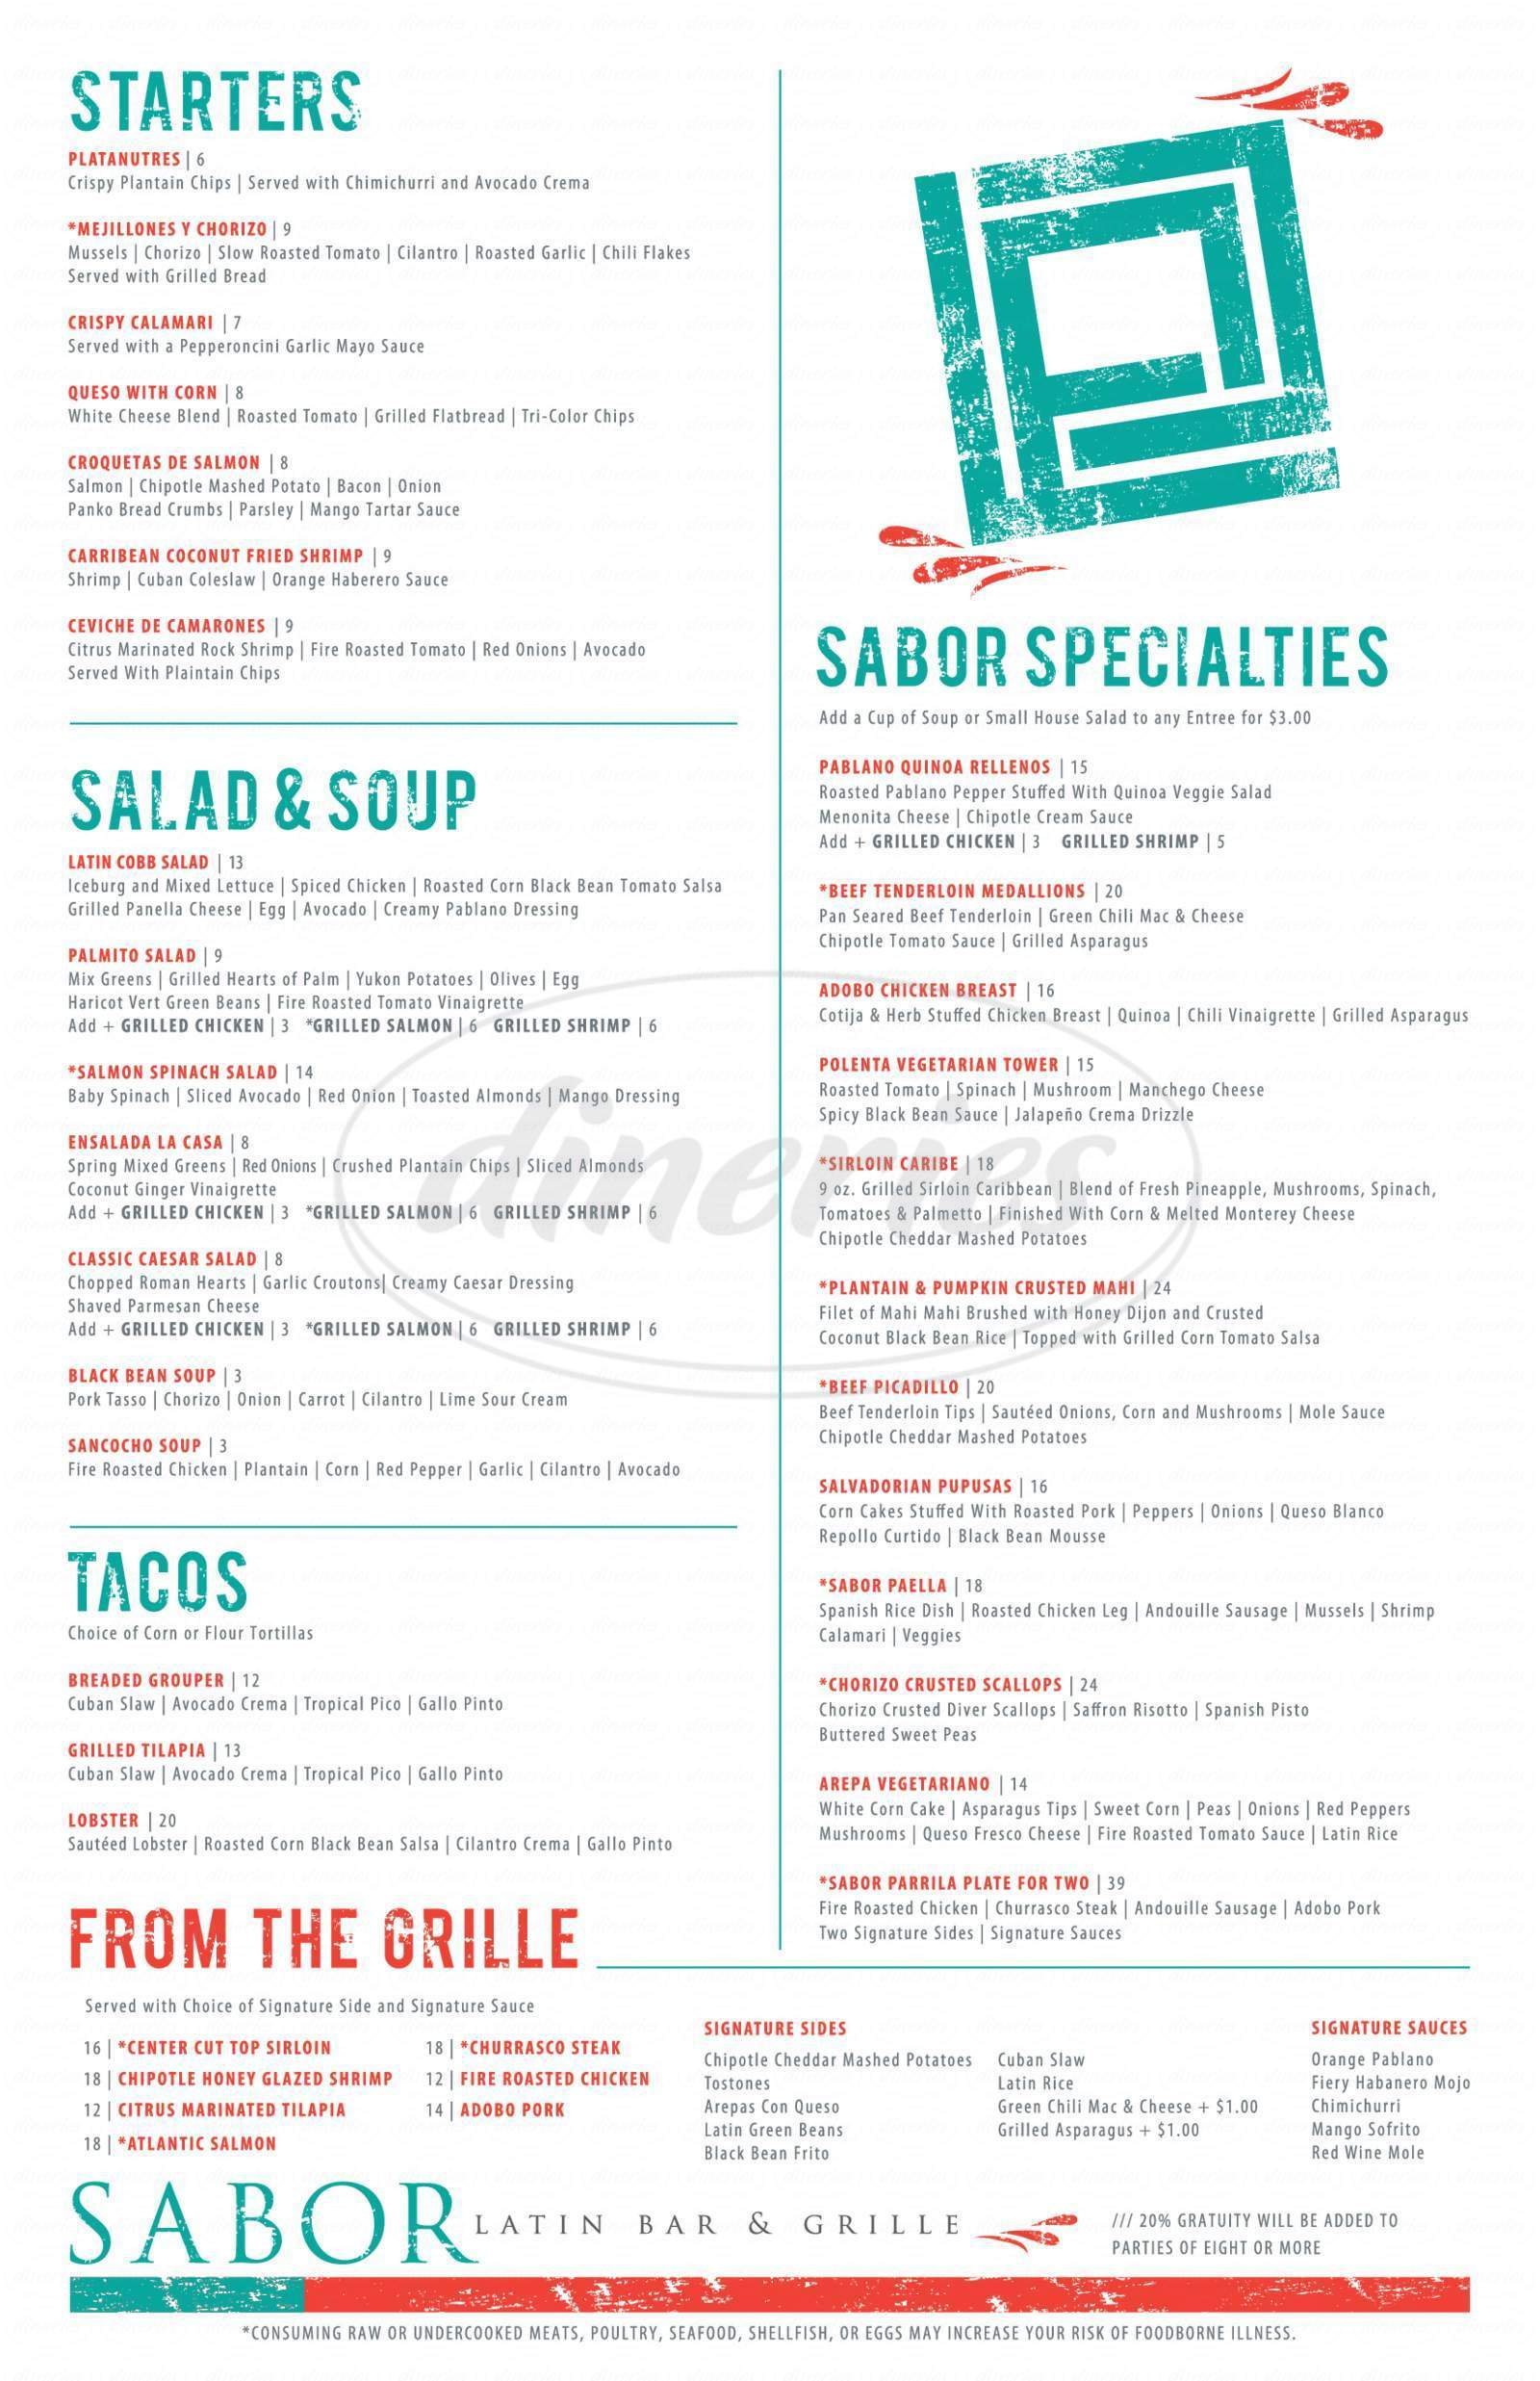 menu for Sabor Latin Bar & Grill